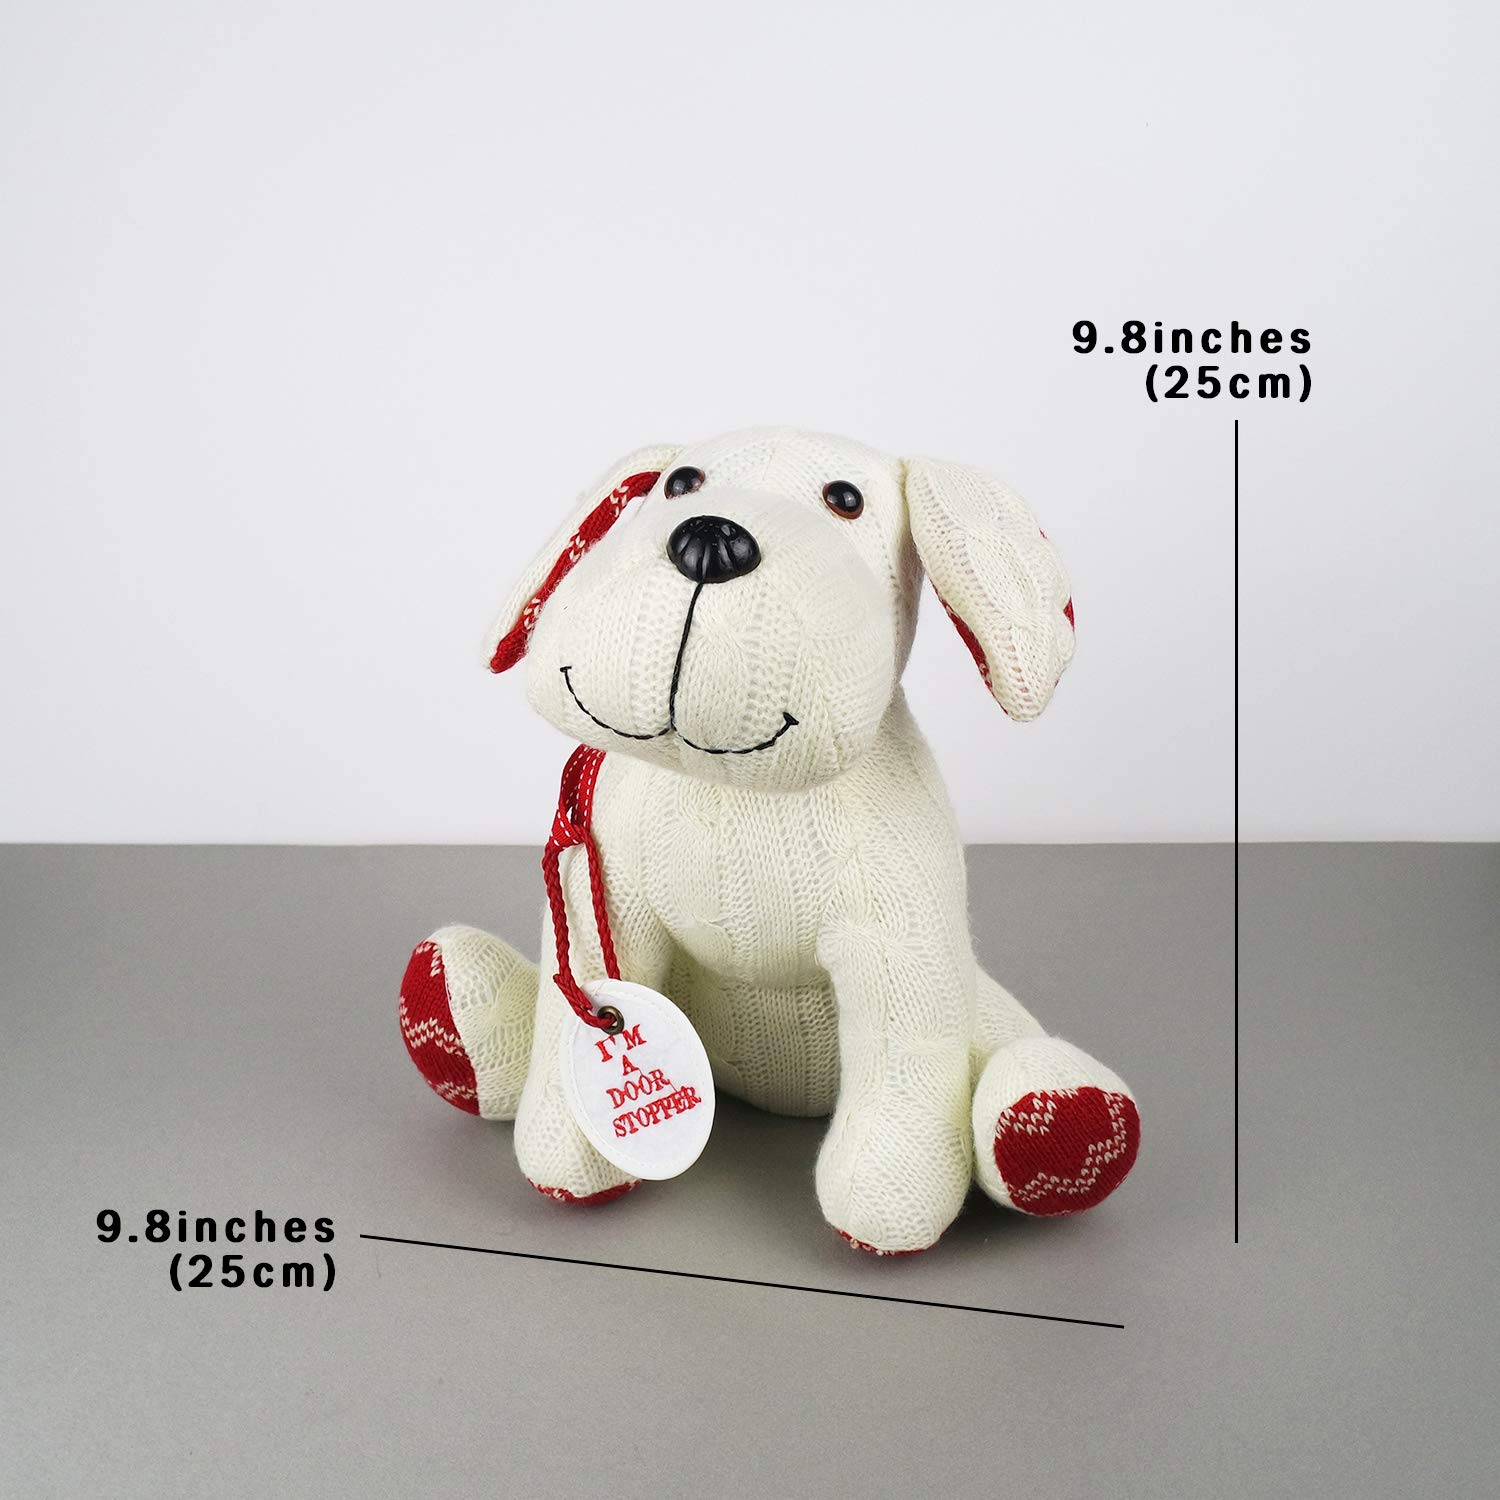 Stuffed Animal White Dog Door Stopper 1.73lb Home Decor Cable Knit Pattern by dwelling (Image #8)